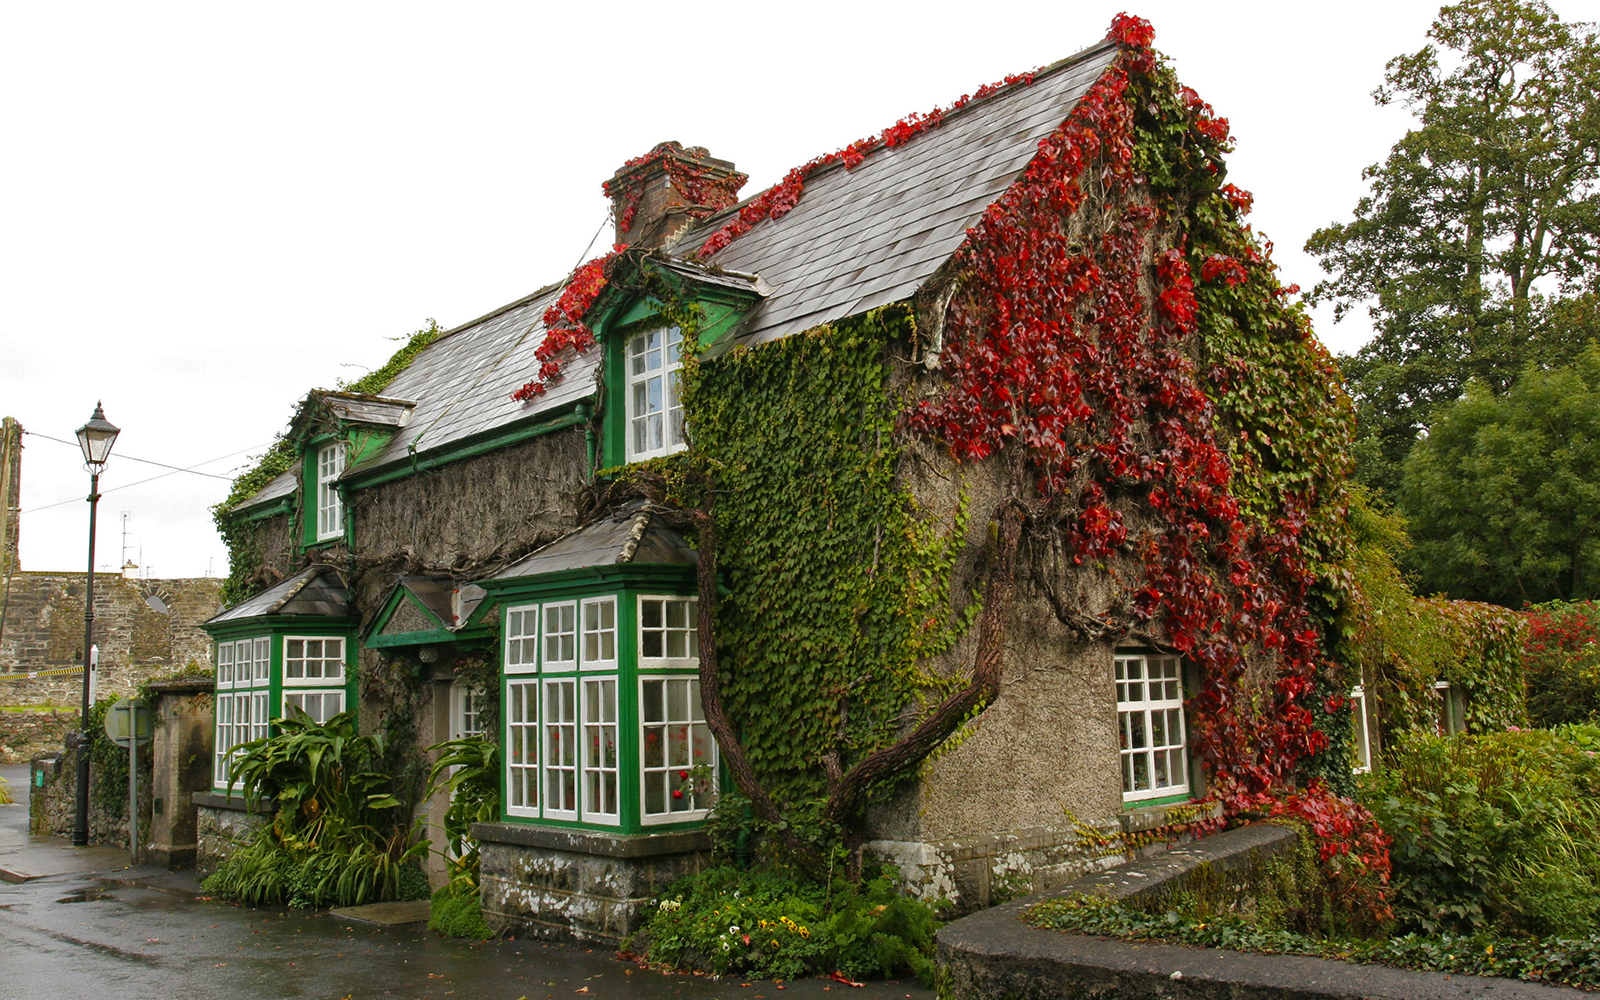 Europe's Most Beautiful Villages: Cong, Ireland